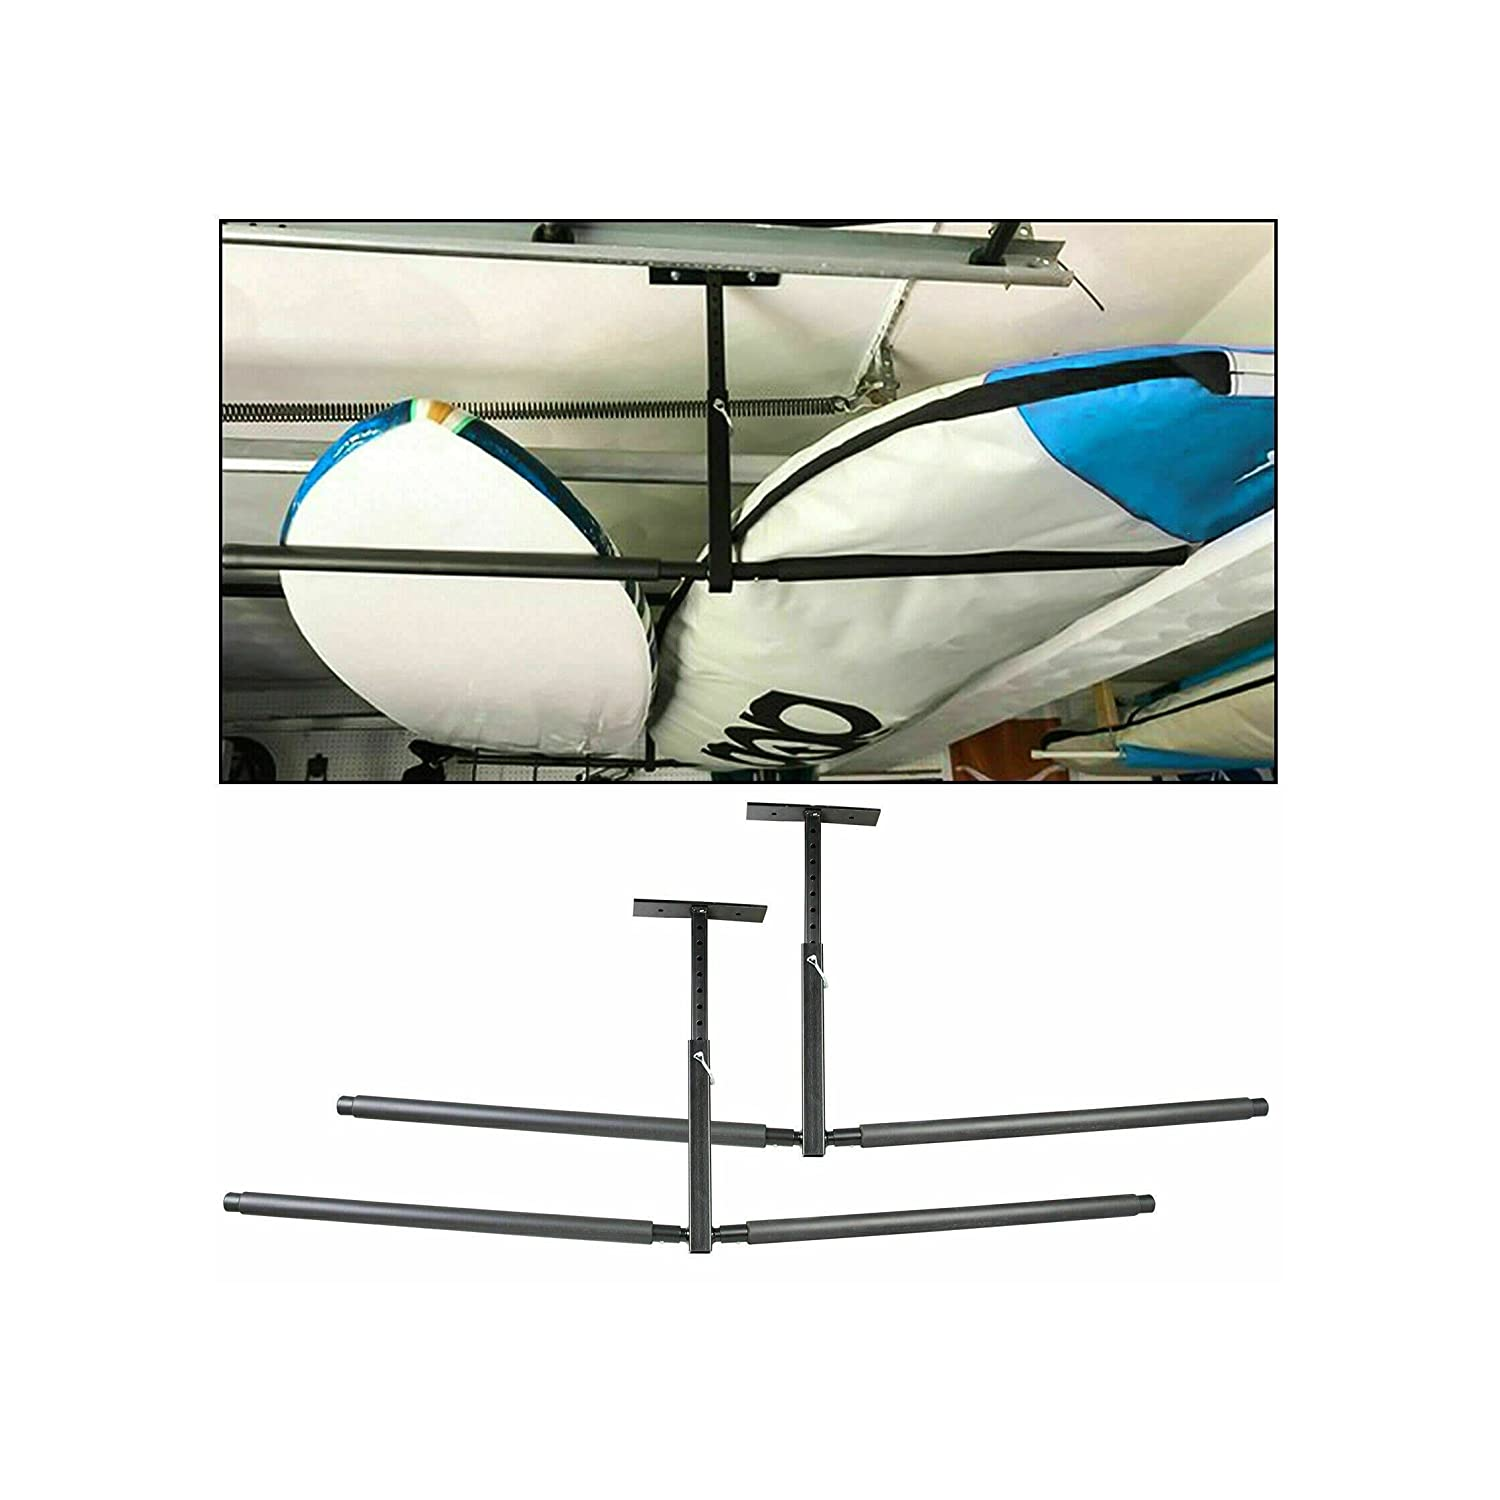 Pair Kayak Ceiling Free shipping anywhere in the nation Rack Storage Mount Hanger Adjus San Francisco Mall Overhead